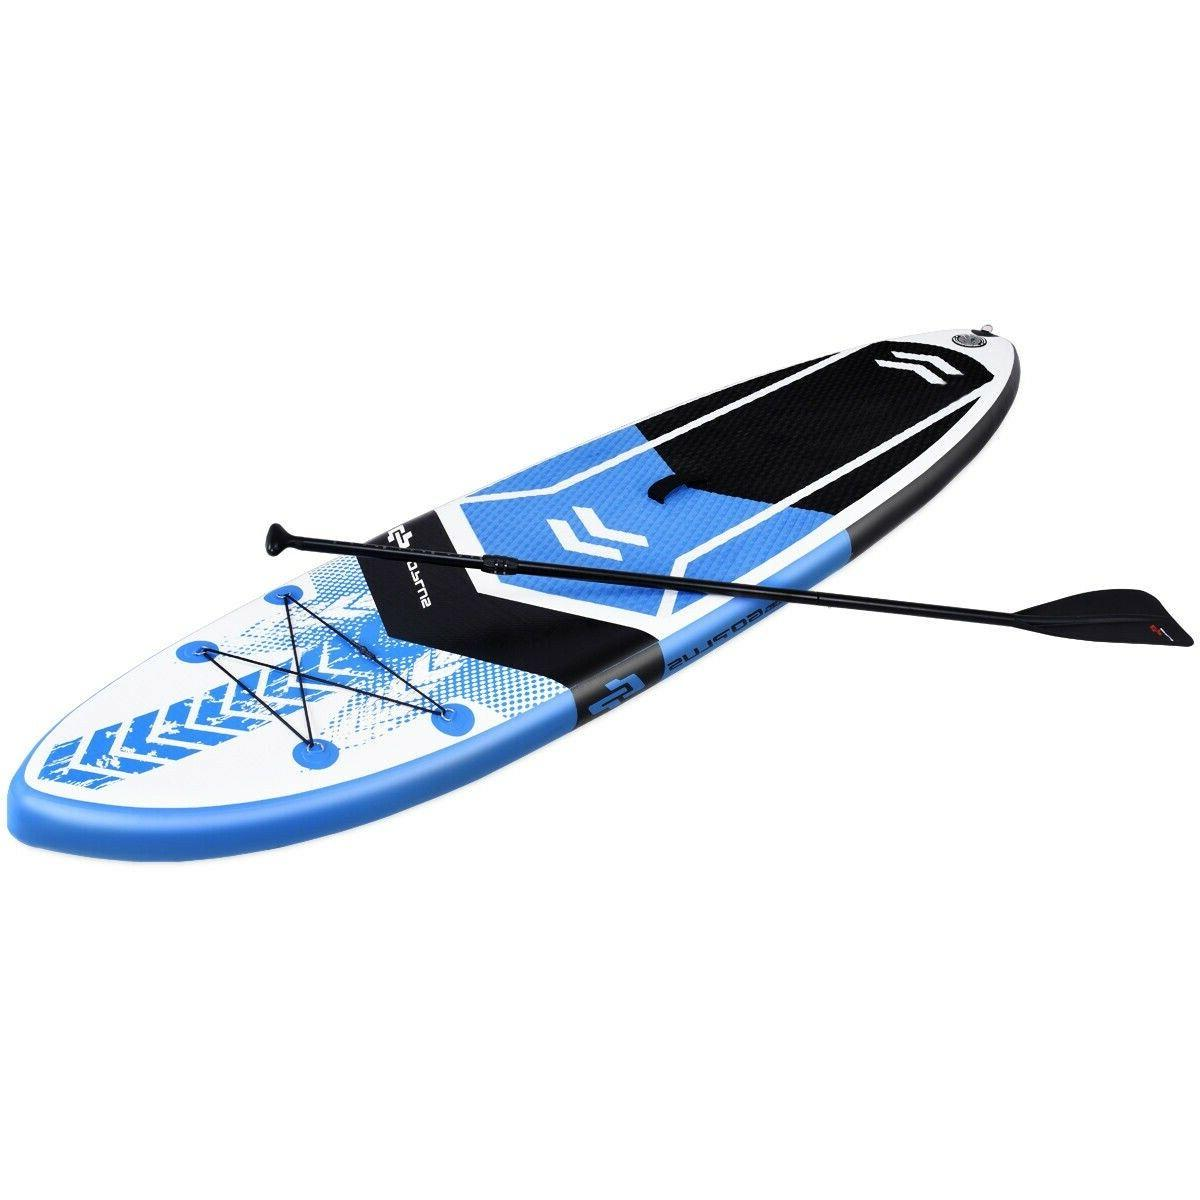 10.5' SUP Inflatable Stand up Paddle Board w/ Adjustable Bac